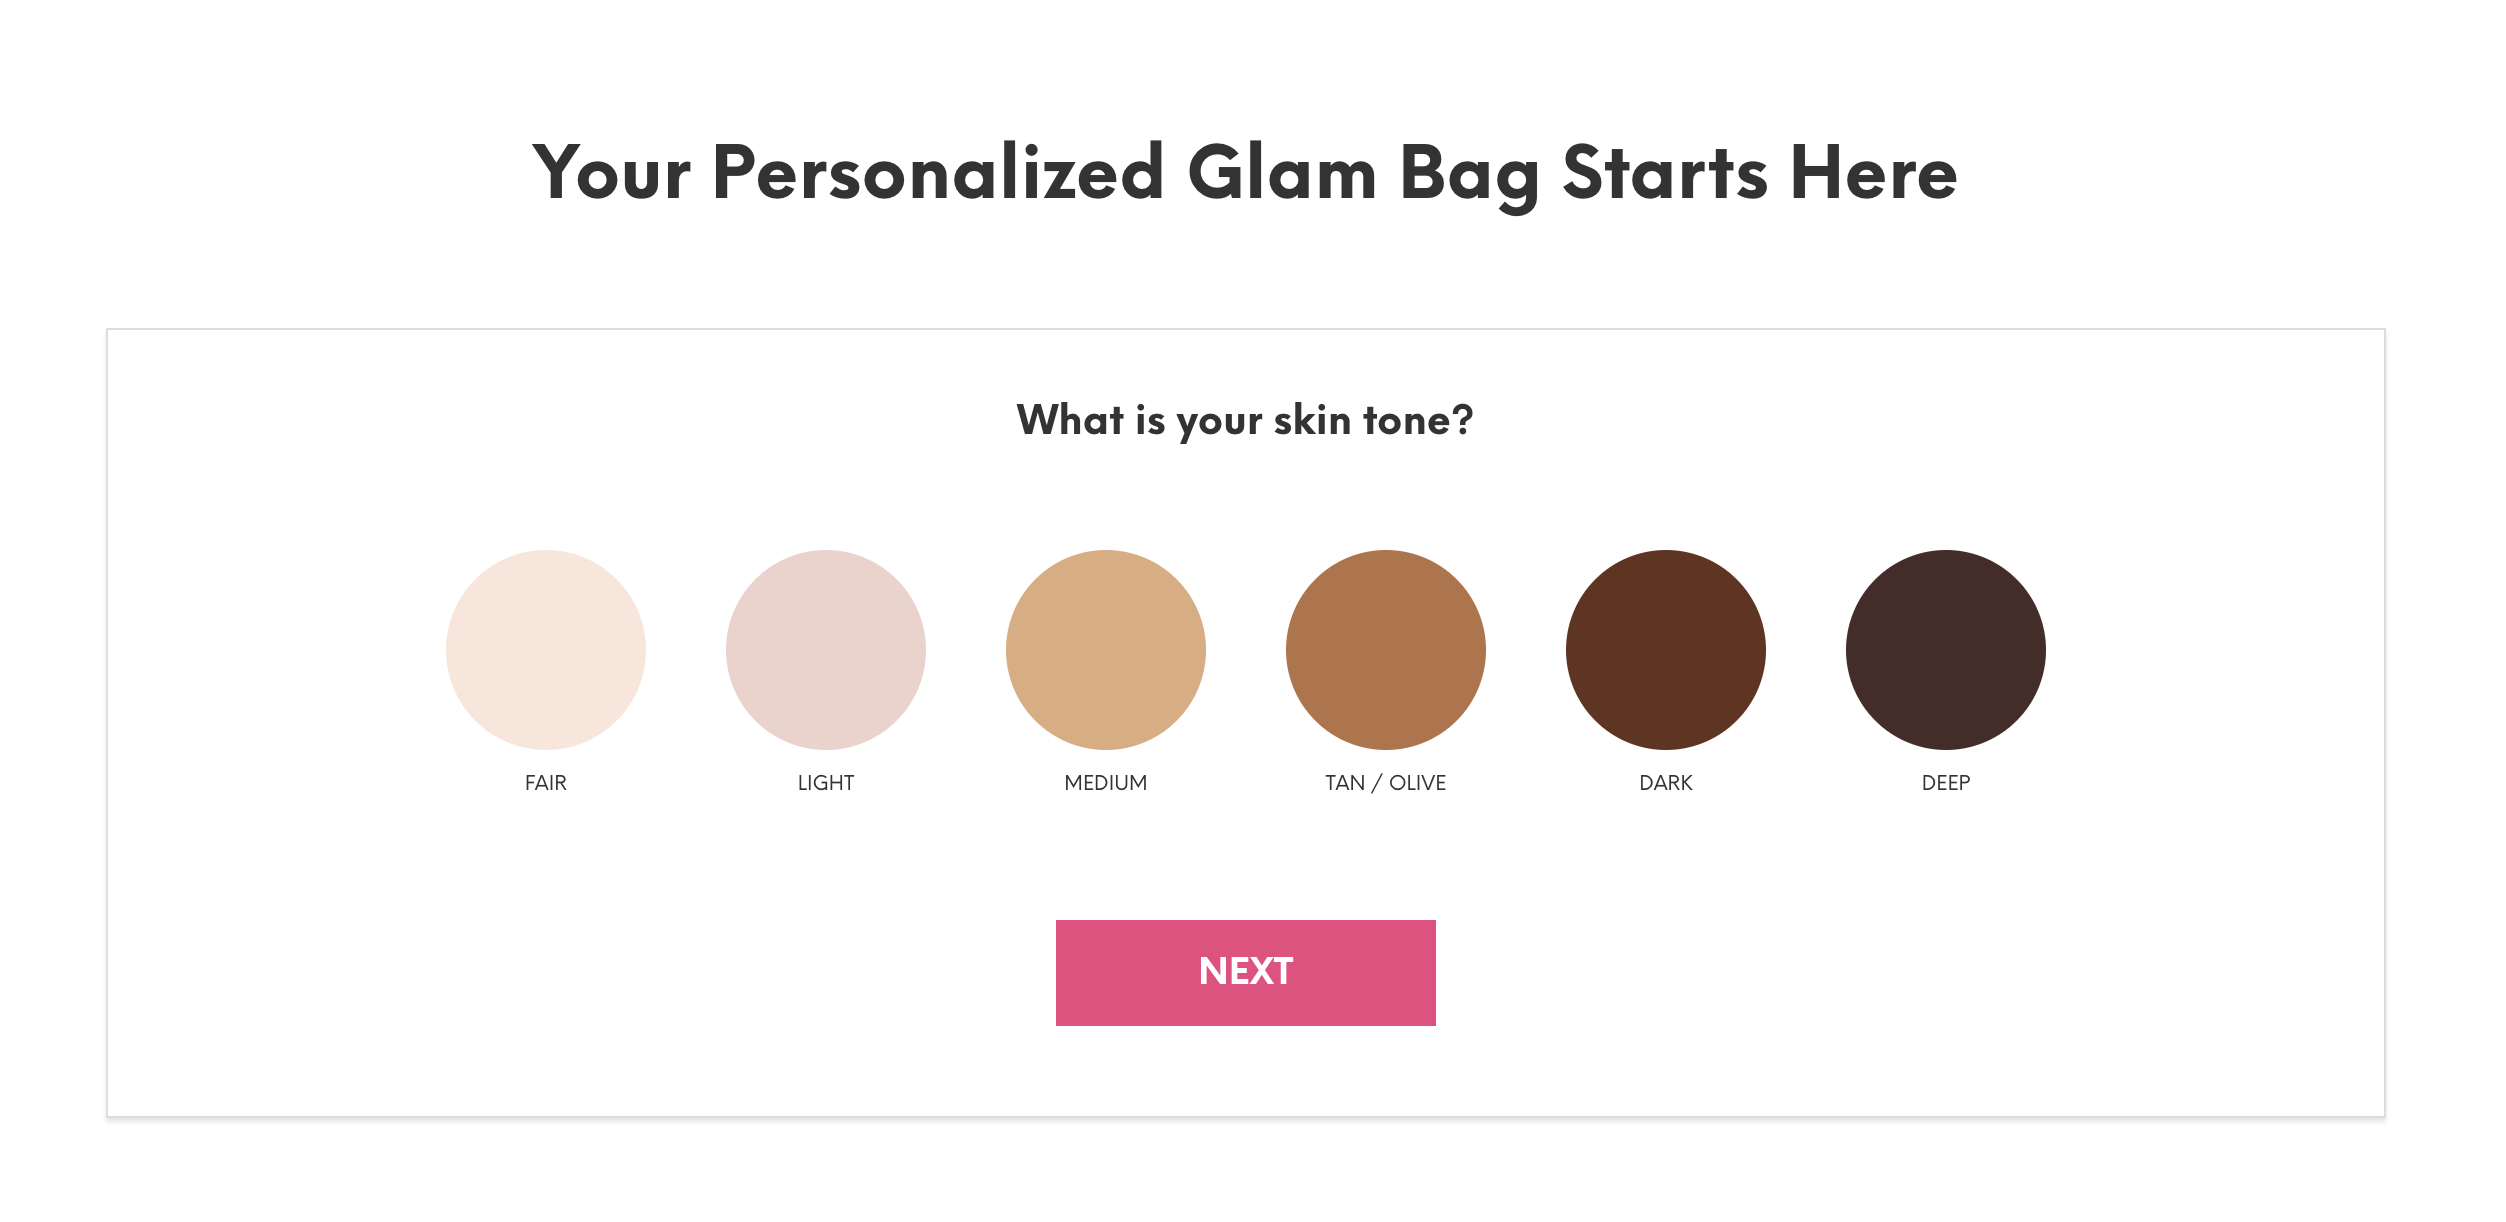 Ipsy's sign up flow is what allows the brand to make a custom glam bag for each customer.